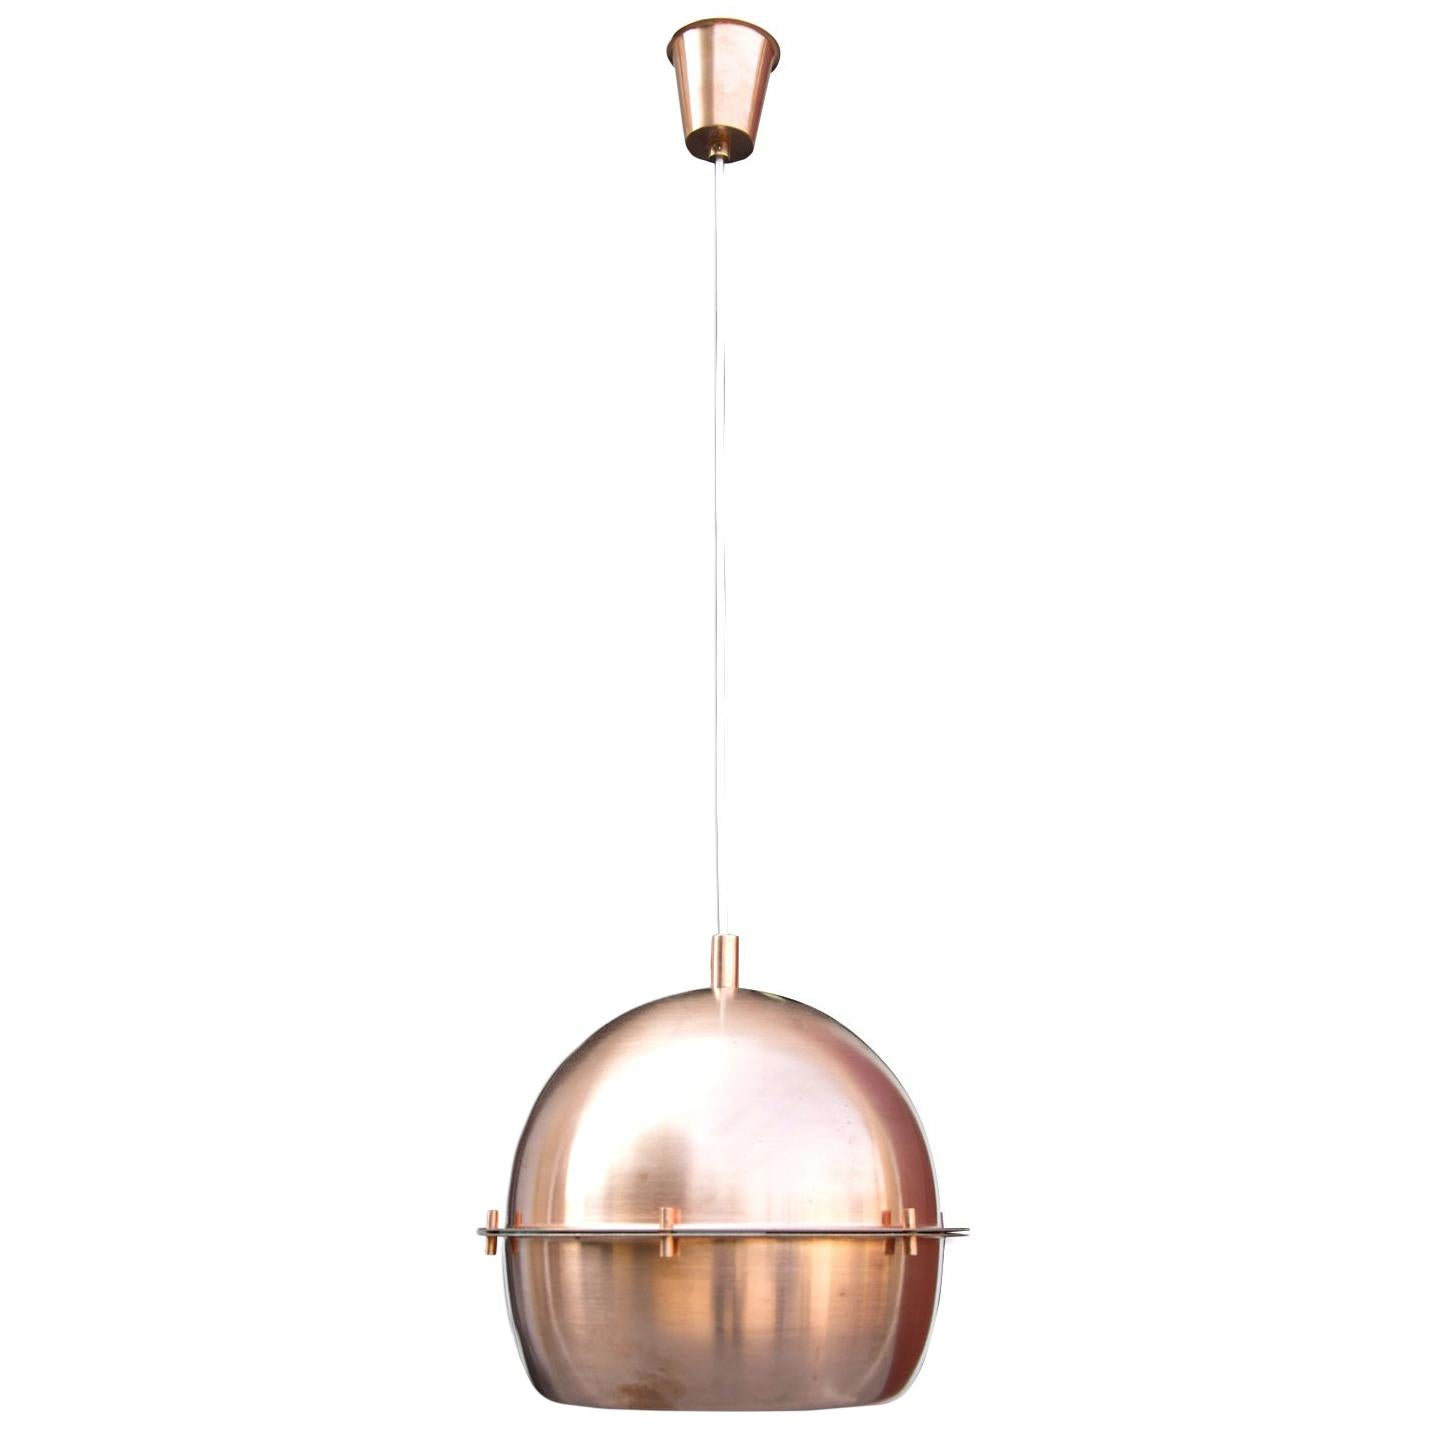 Space Age Copper Hanging Chandelier, Germany, 1960s